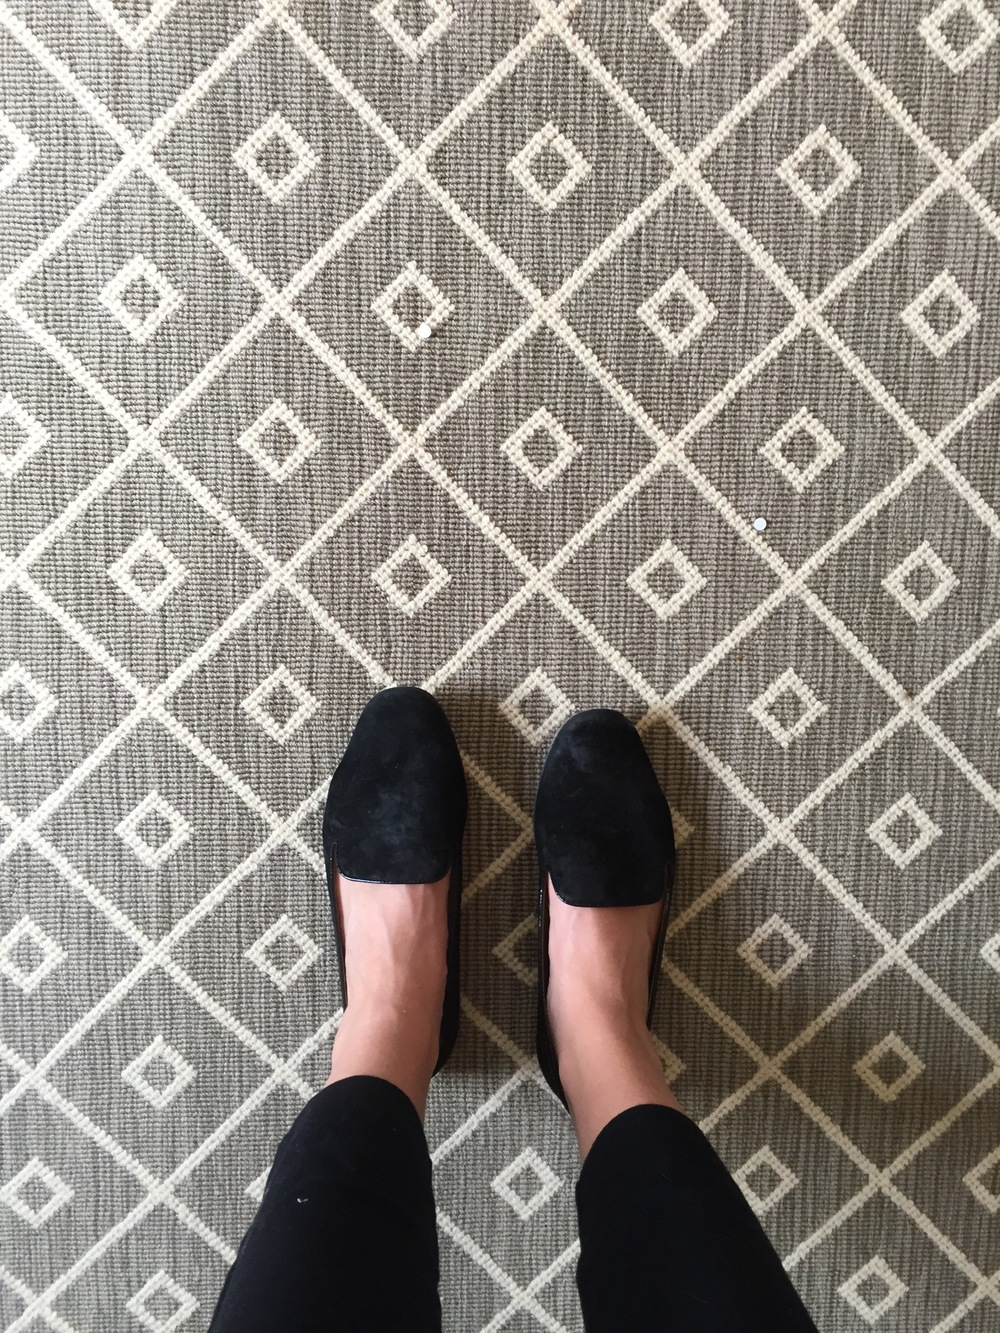 this rug was a game changer in a client's office